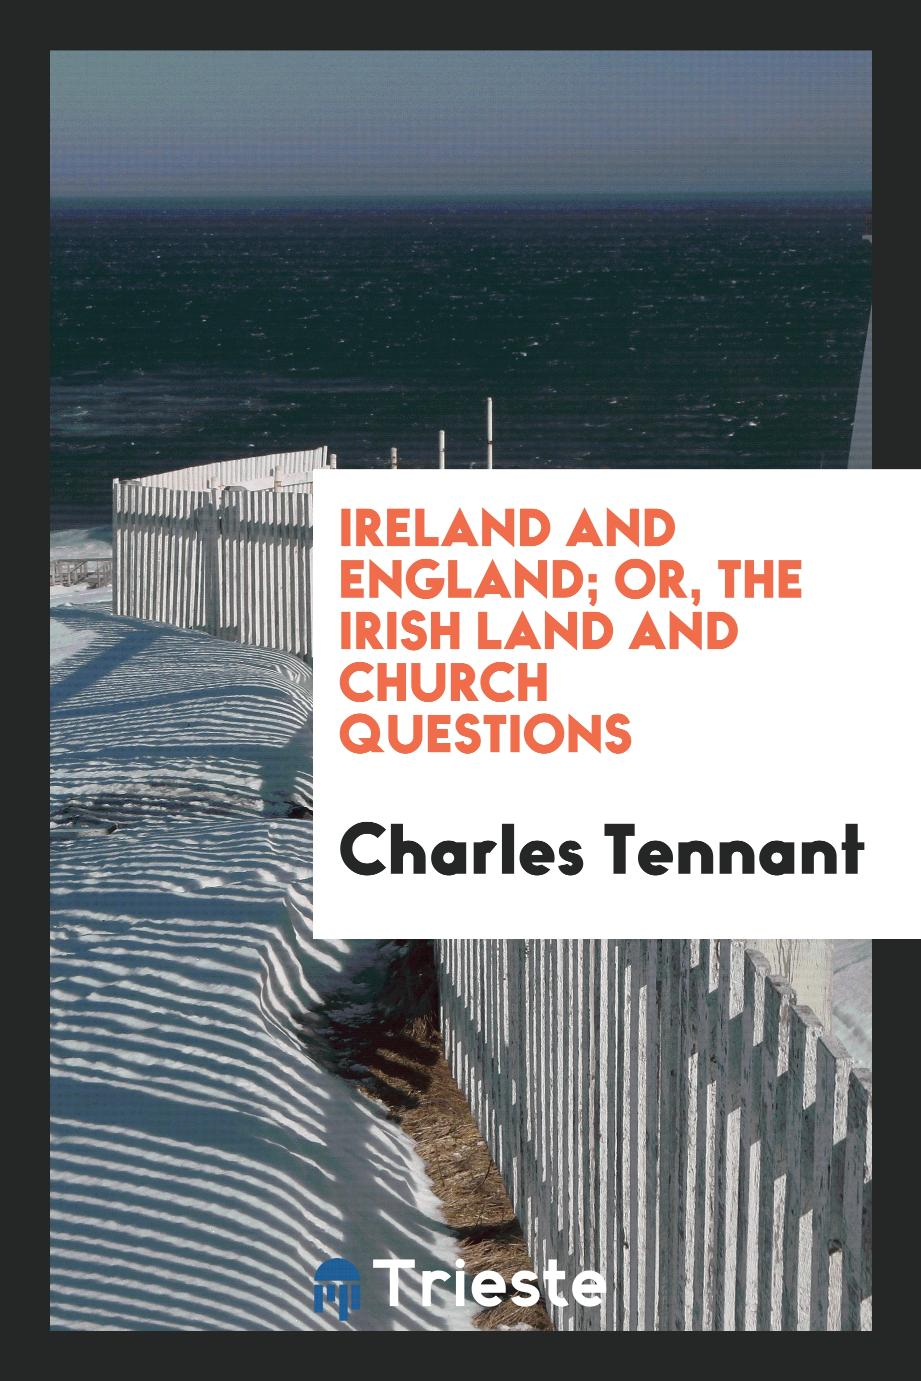 Ireland and England; Or, The Irish Land and Church Questions